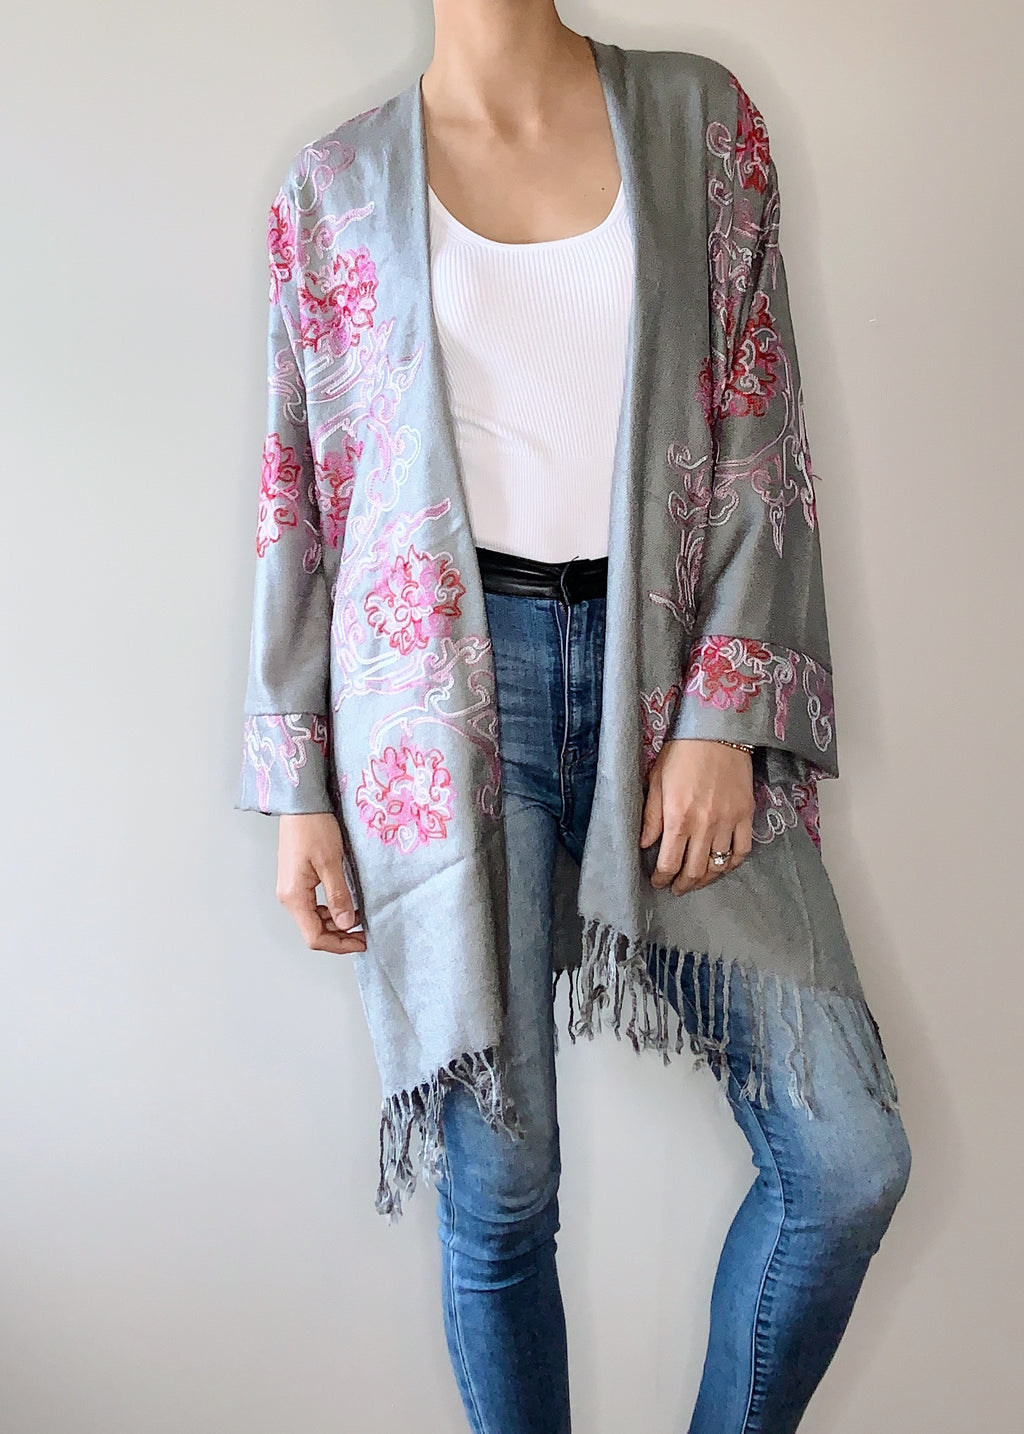 Nostalgia Boho Jacket in Grey with Cuffs